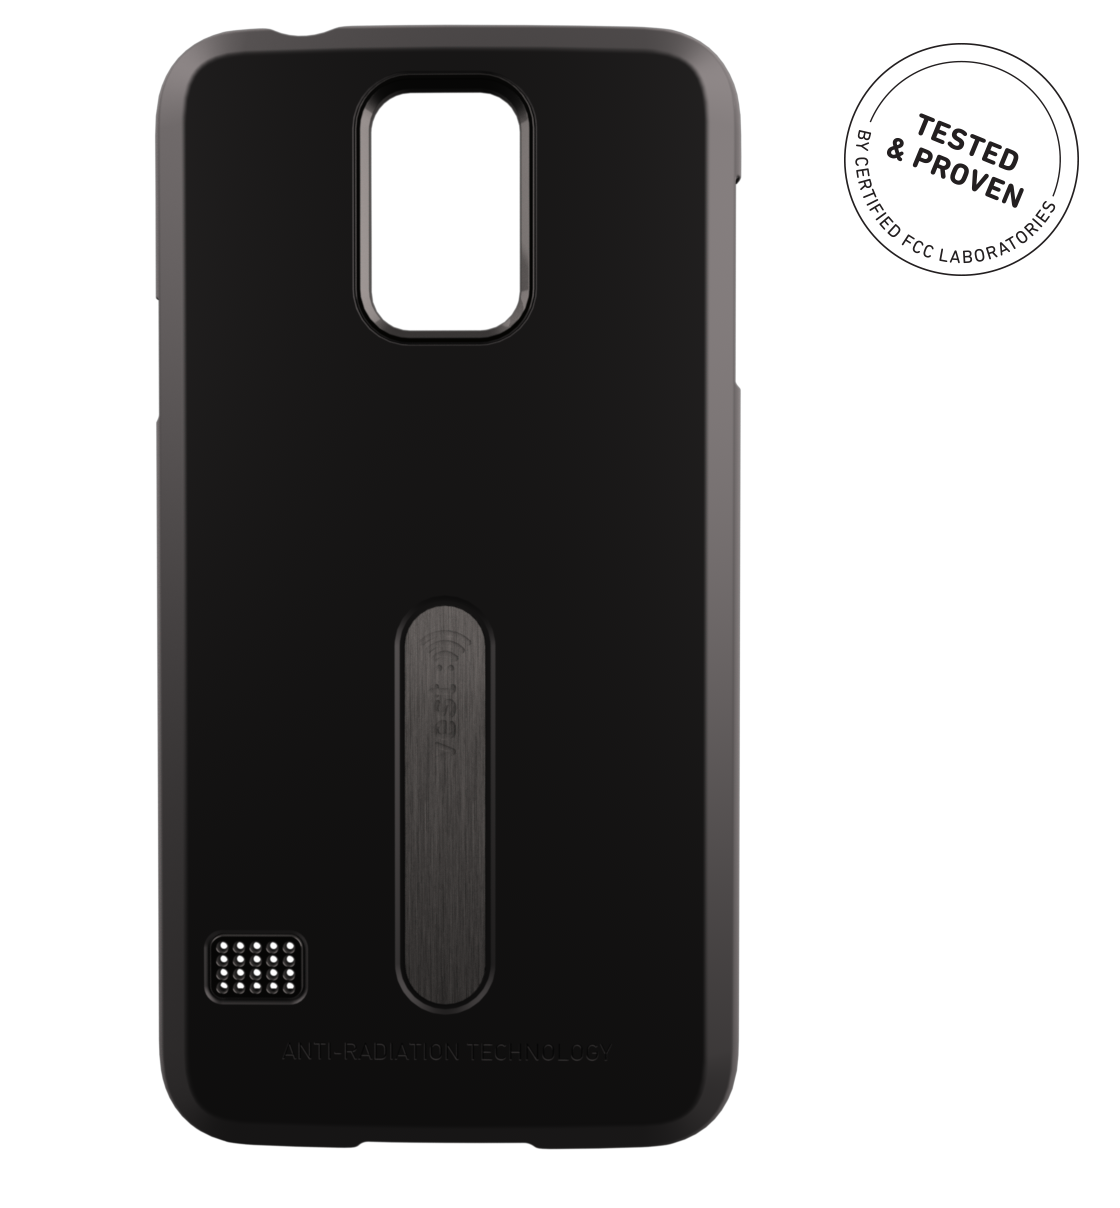 vest Anti-Radiation Case for Galaxy S5 00083